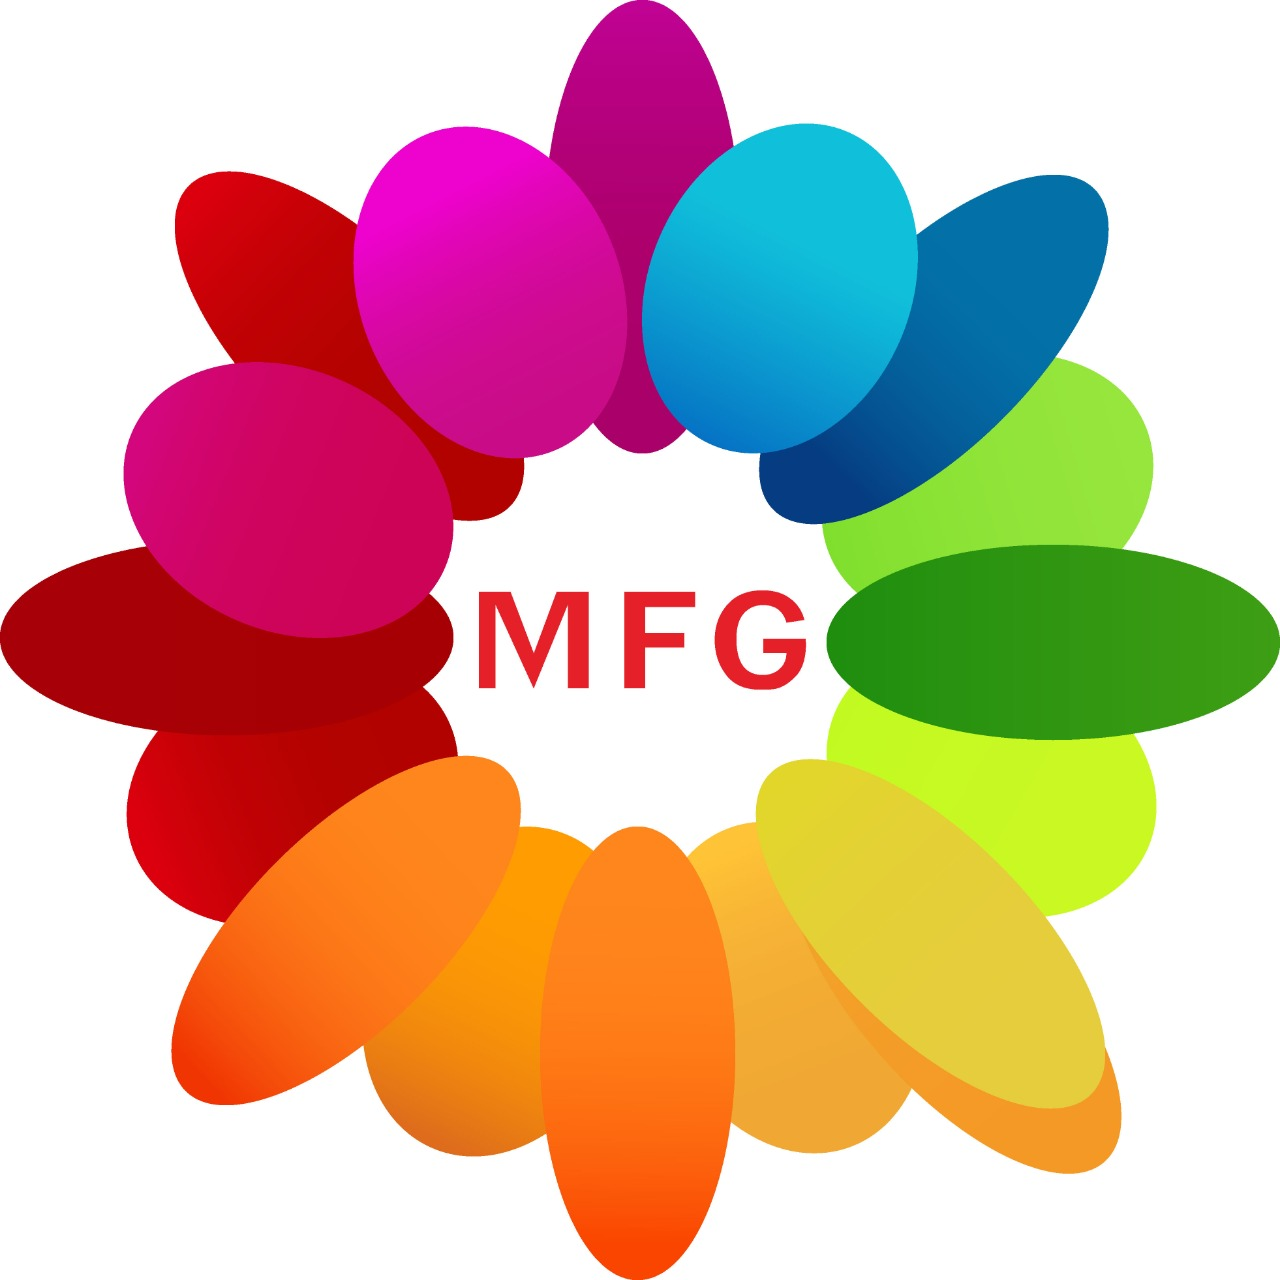 Blue Orchids and white carnations Arrangement Myflower t